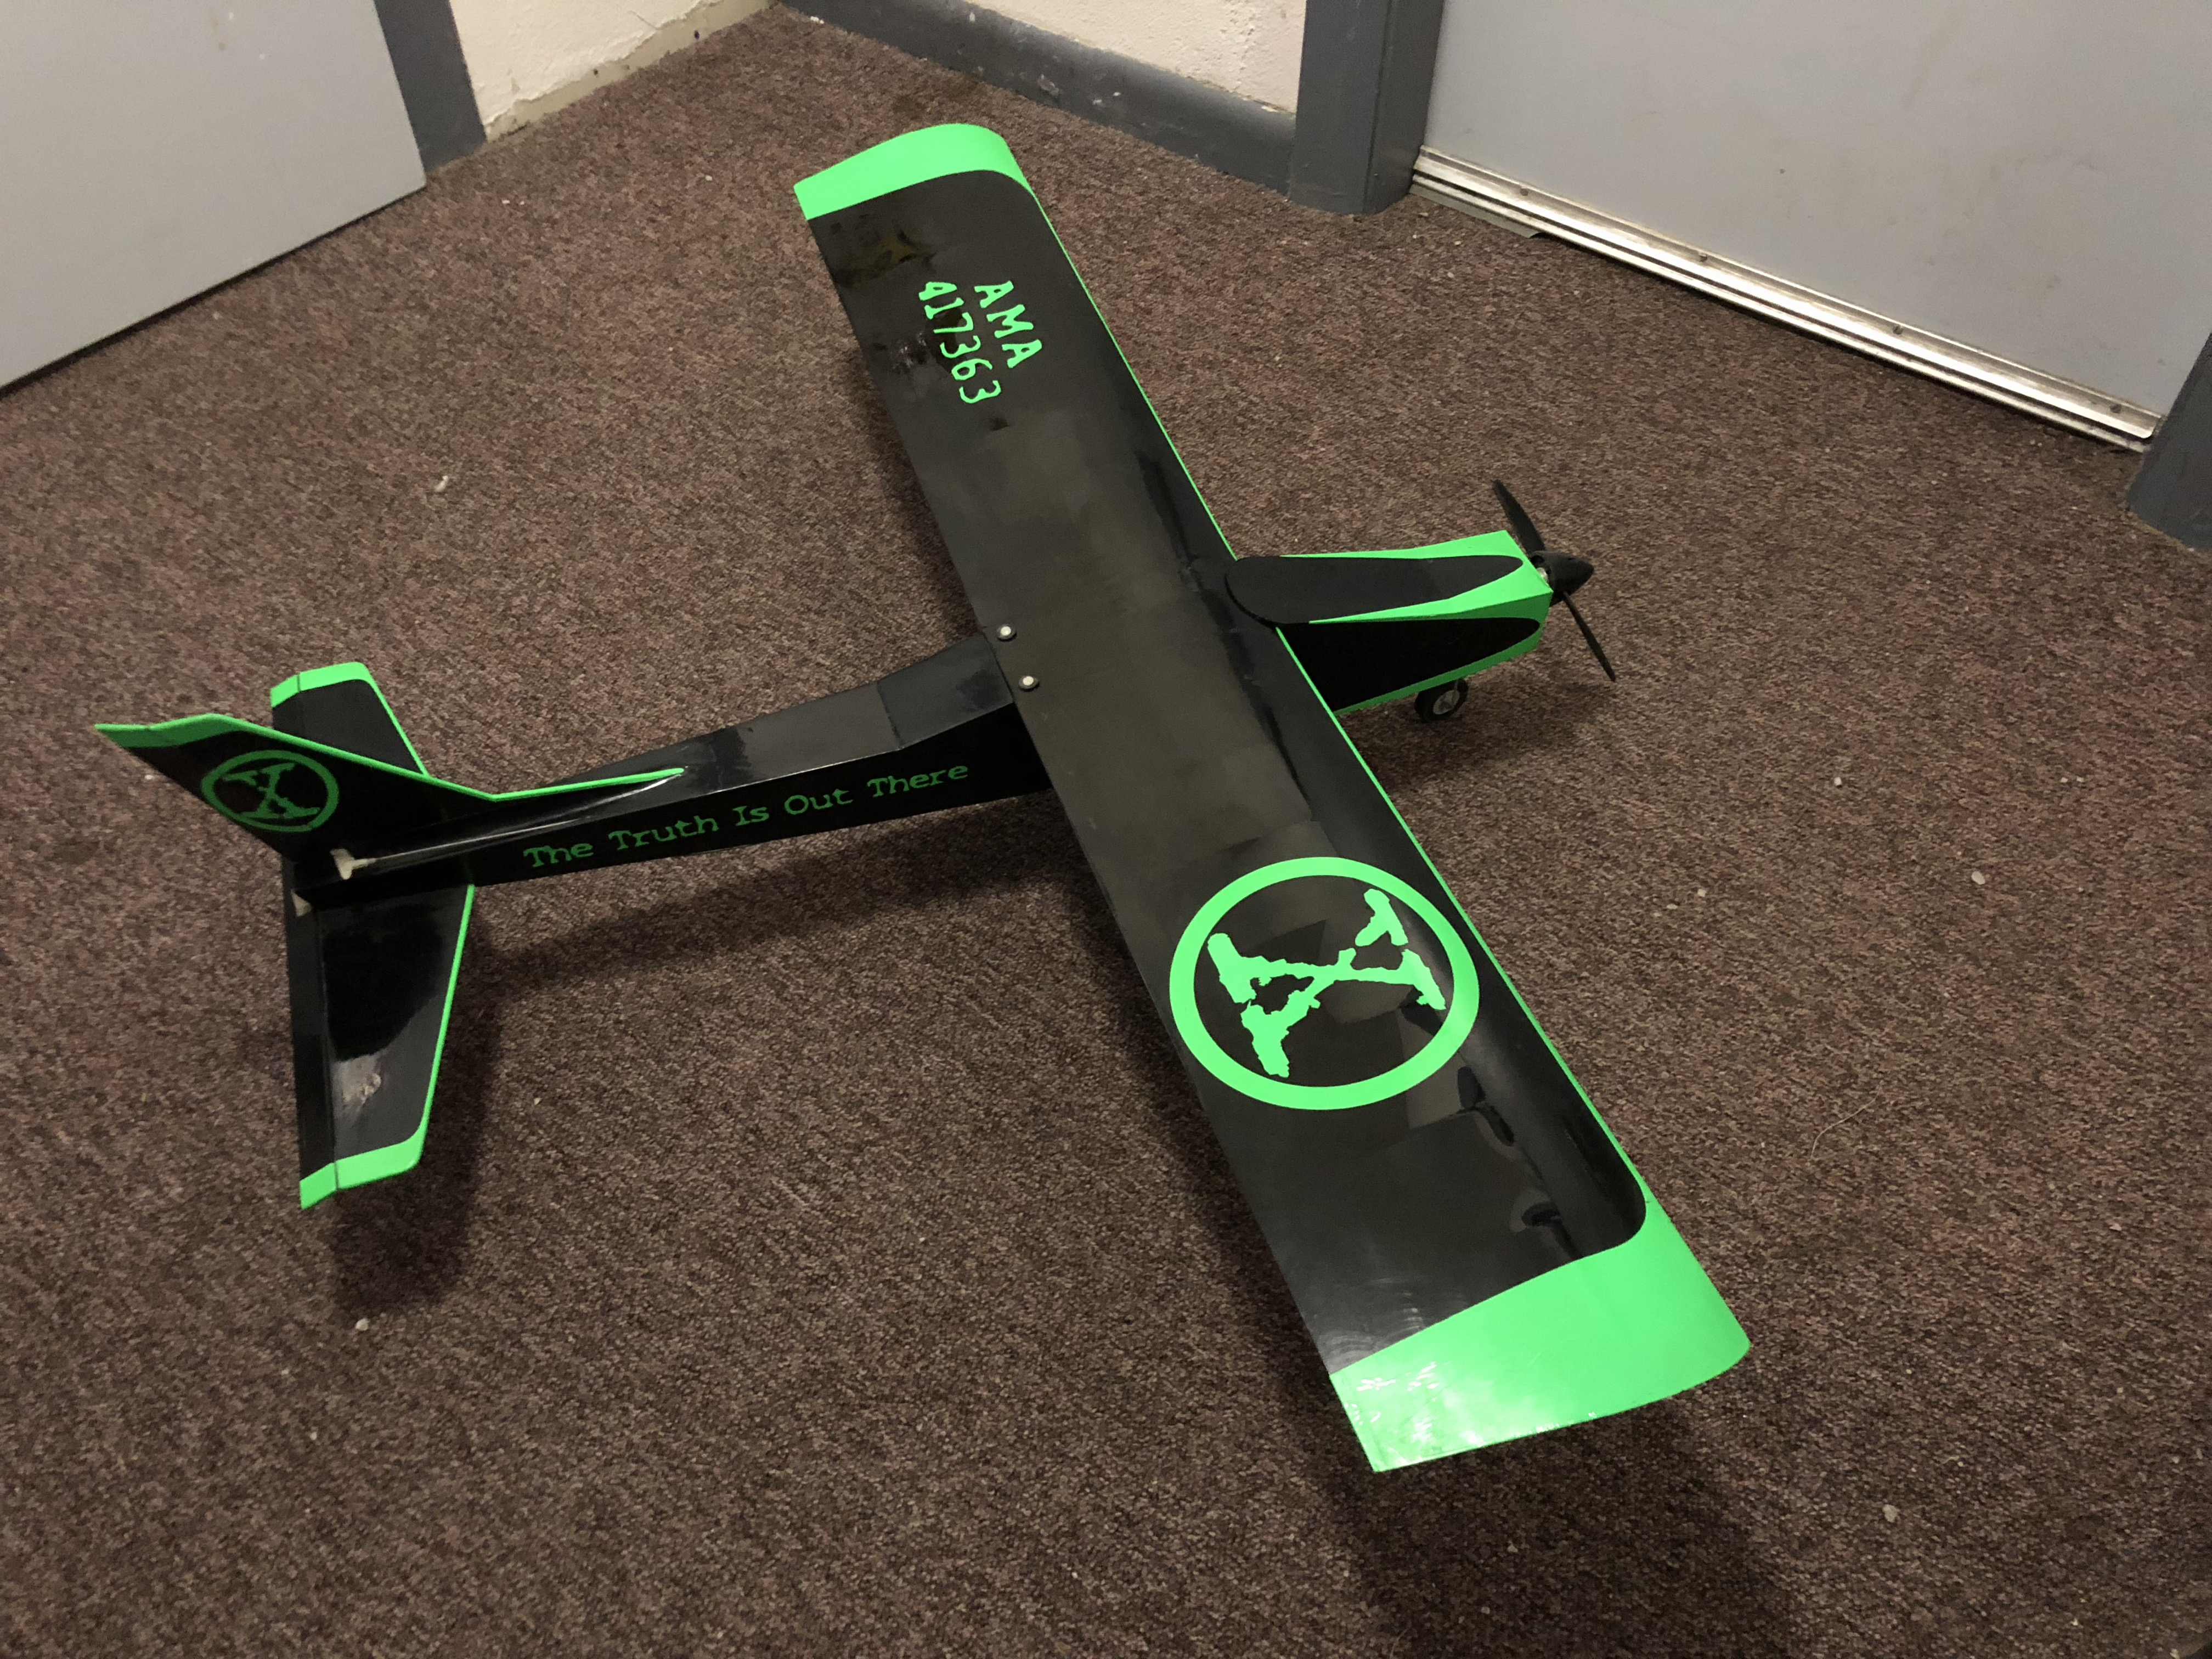 Midwest Aero Lectric Kit Wattflyer Rc Electric Flight Forums Old Airtronics Servos Discuss Enitria Is Offline